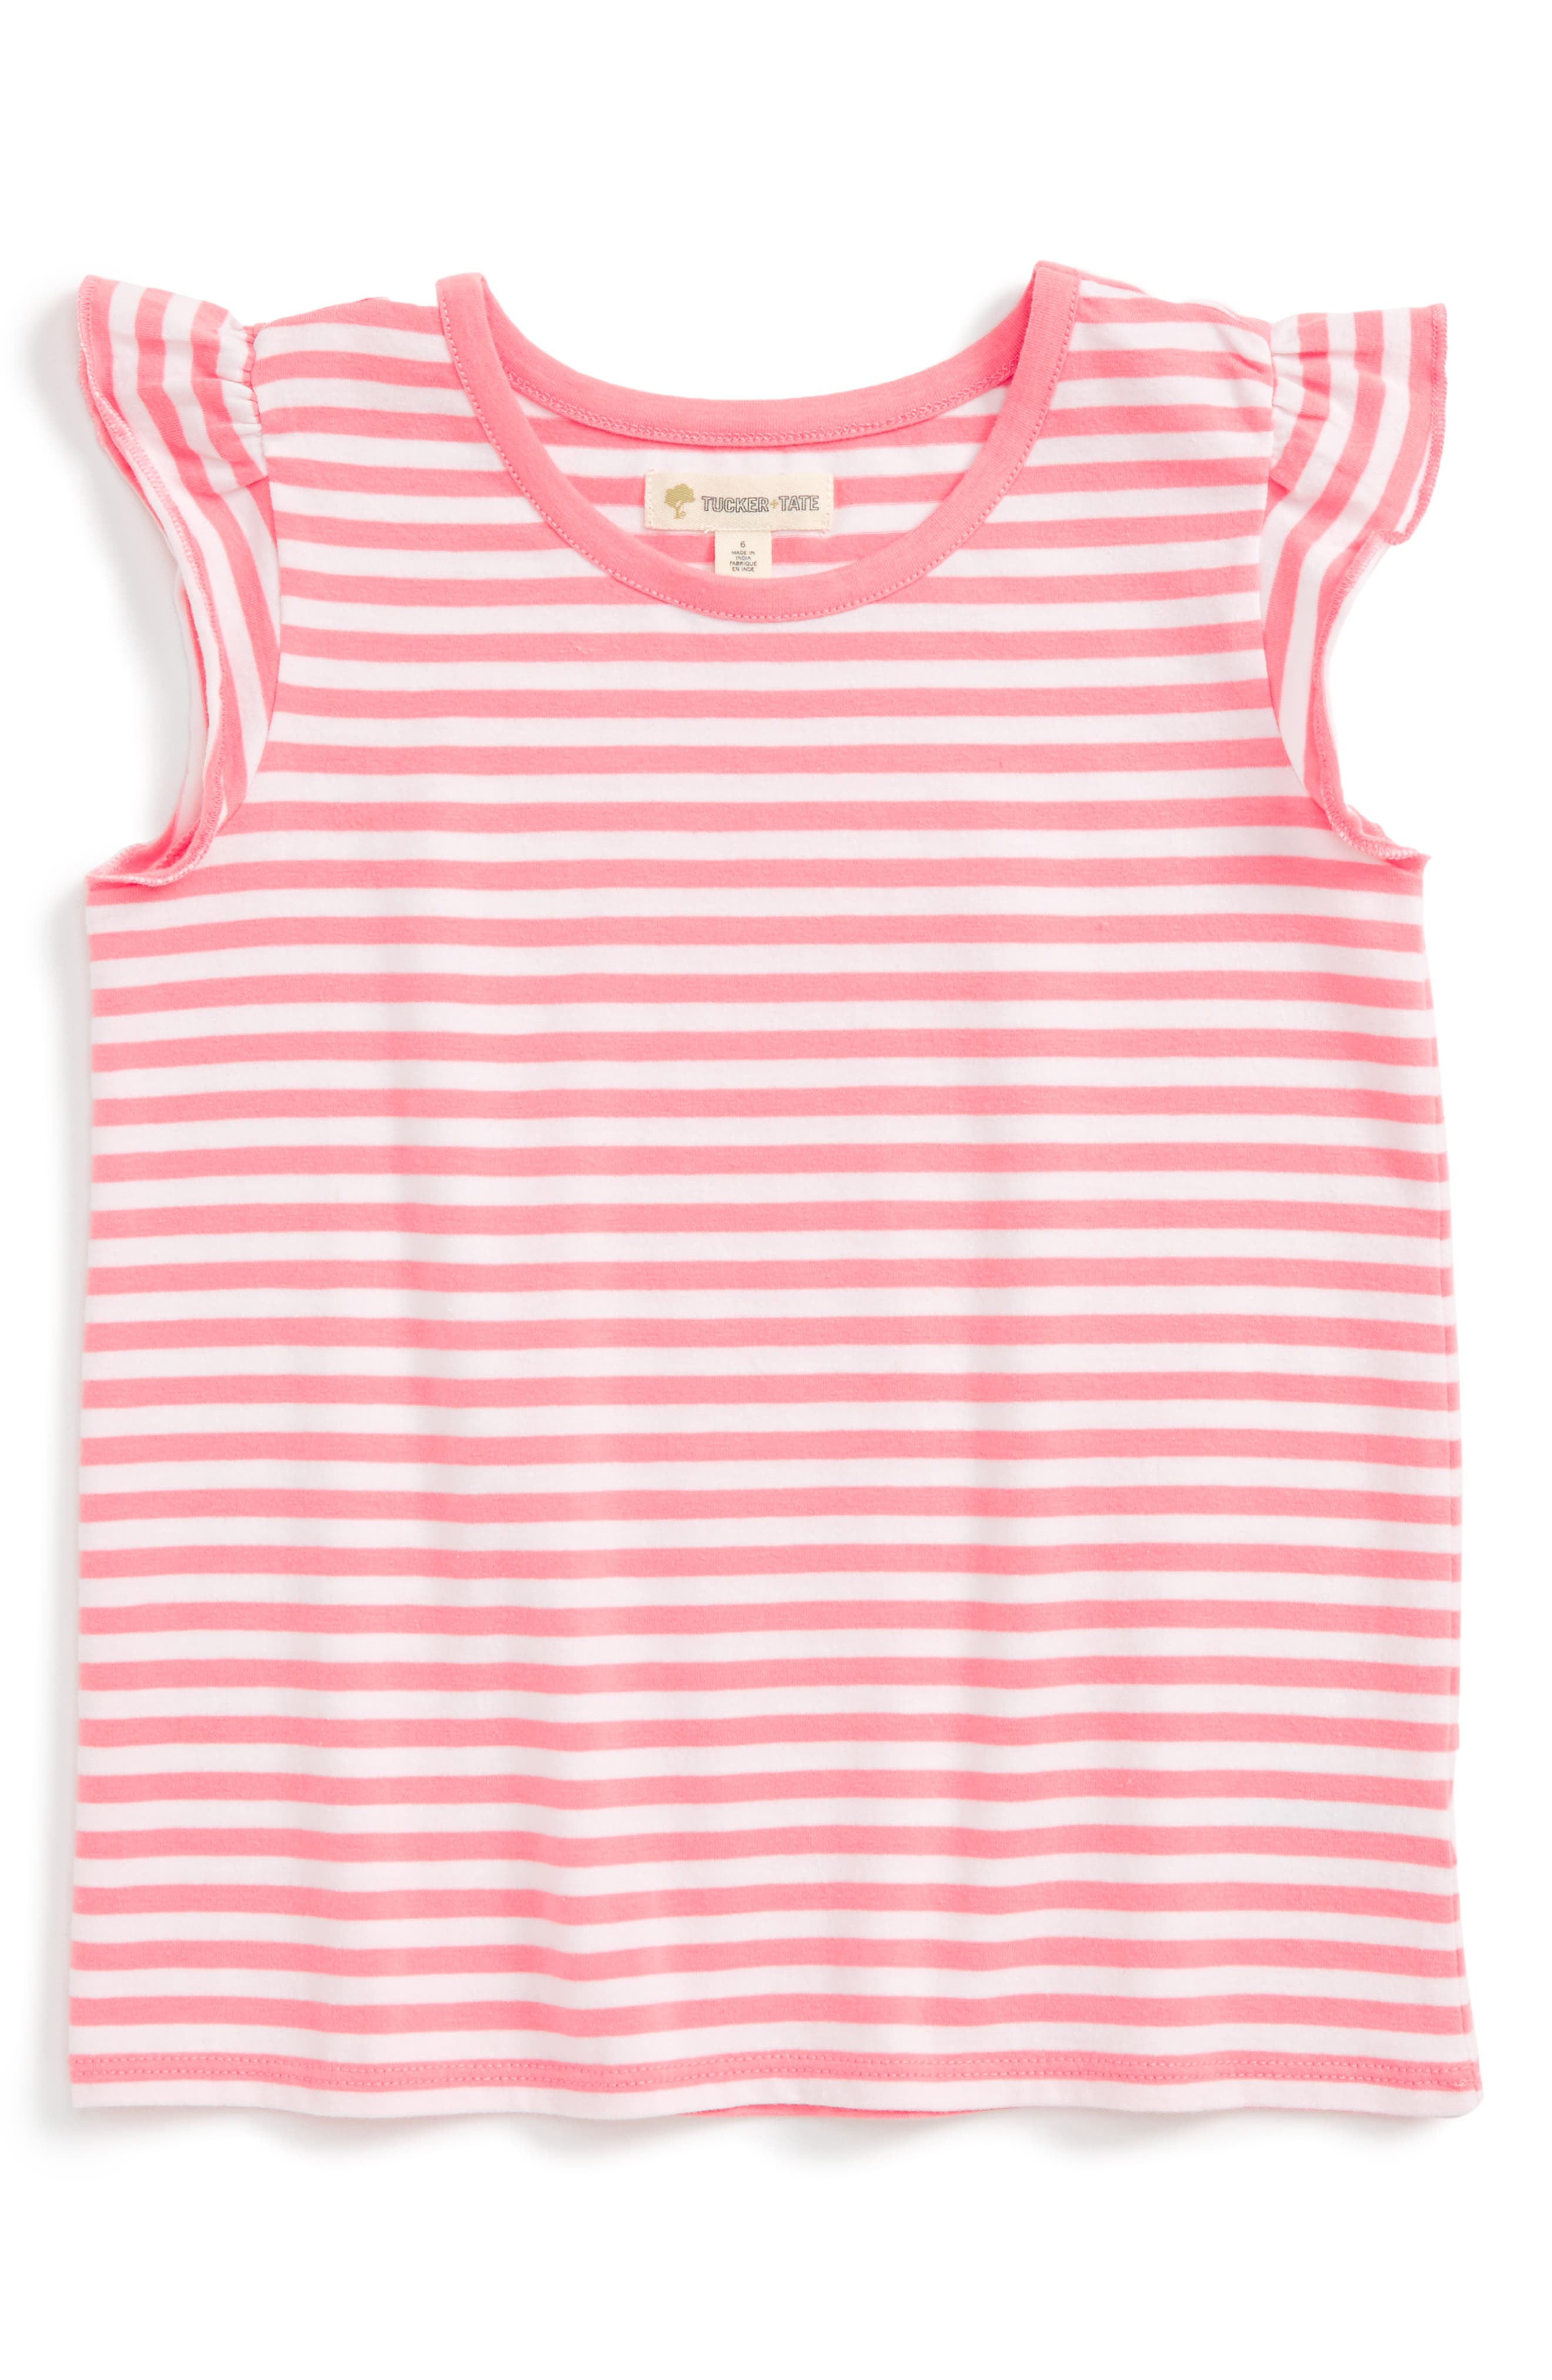 Tucker + Tate Stripe Flutter Sleeve Tee (Toddler Girls, Little Girls & Big Girls)